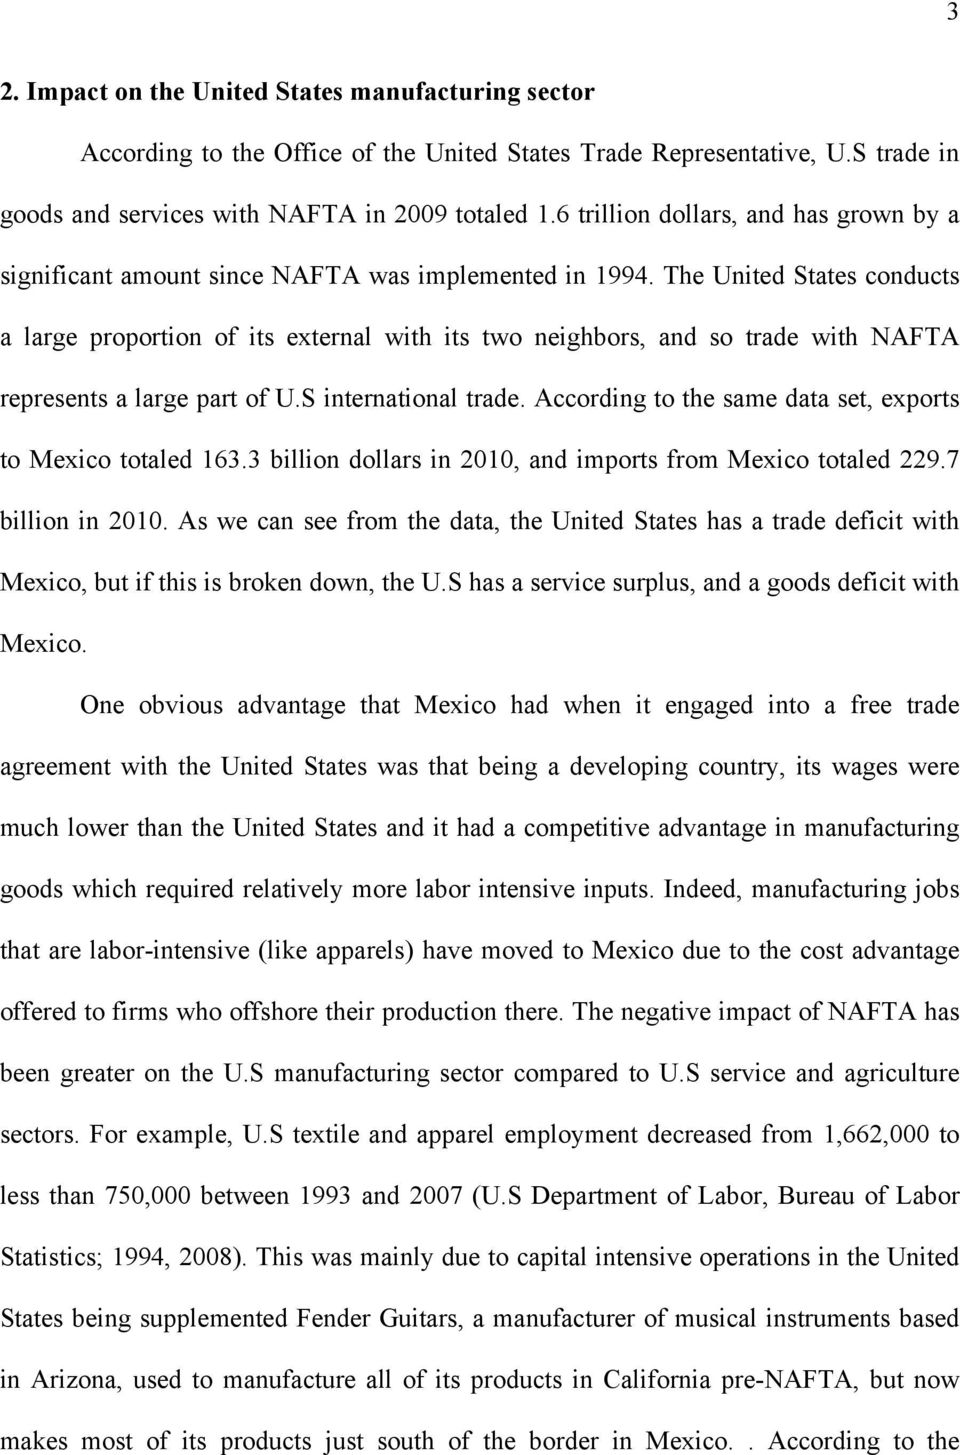 The United States conducts a large proportion of its external with its two neighbors, and so trade with NAFTA represents a large part of U.S international trade.